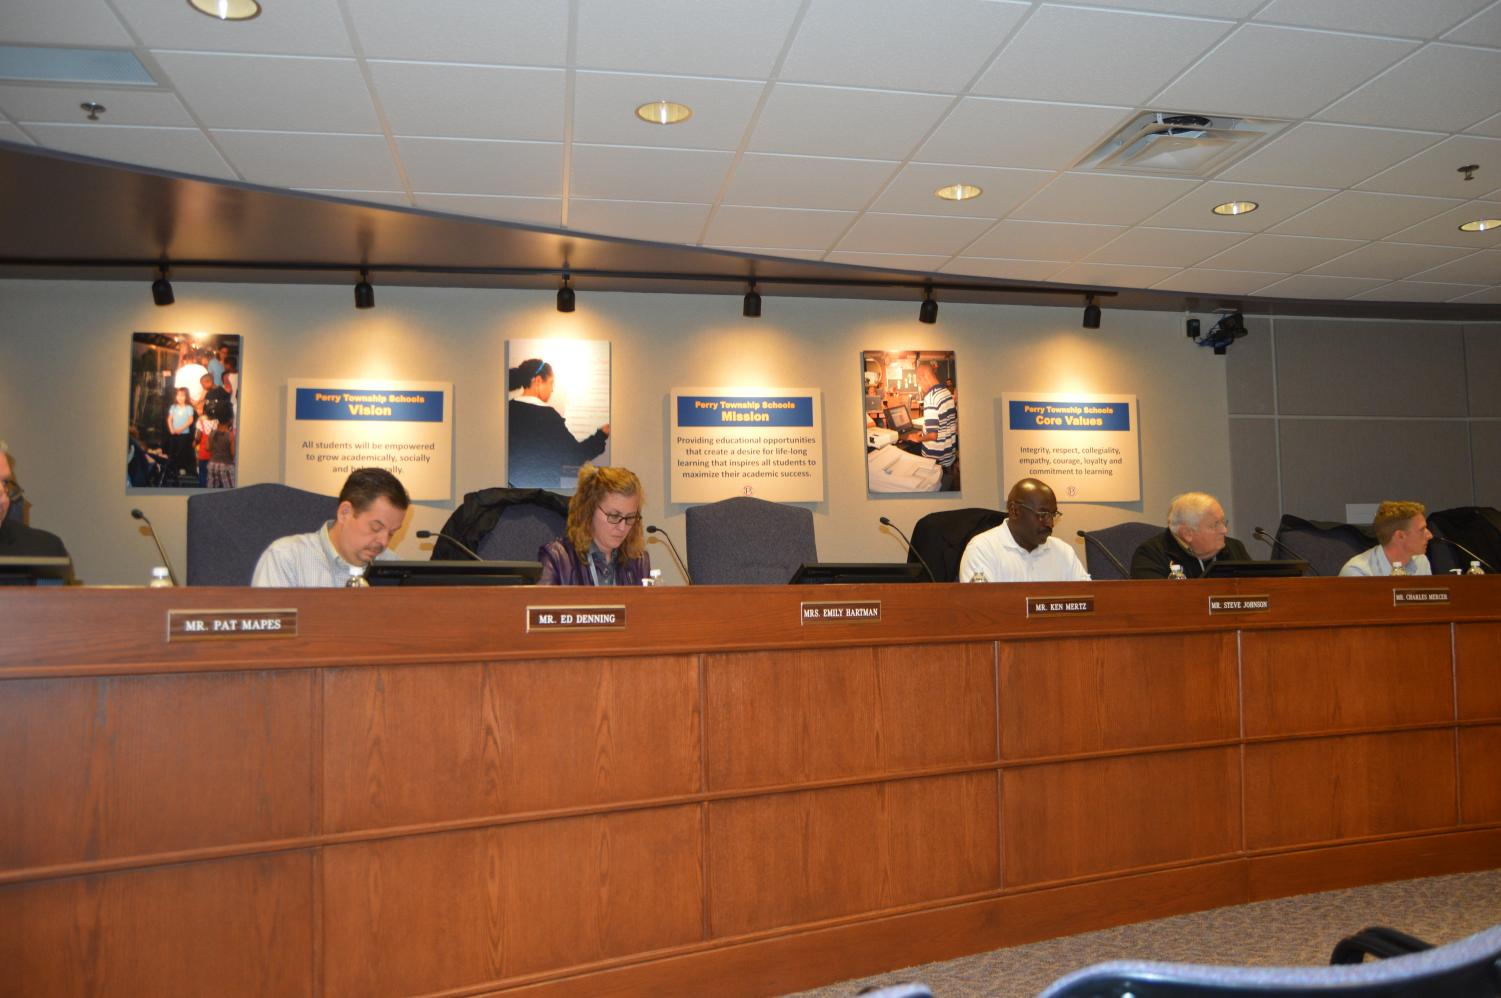 The Perry Township school board meets for a regularly scheduled board meeting on Dec. 10.